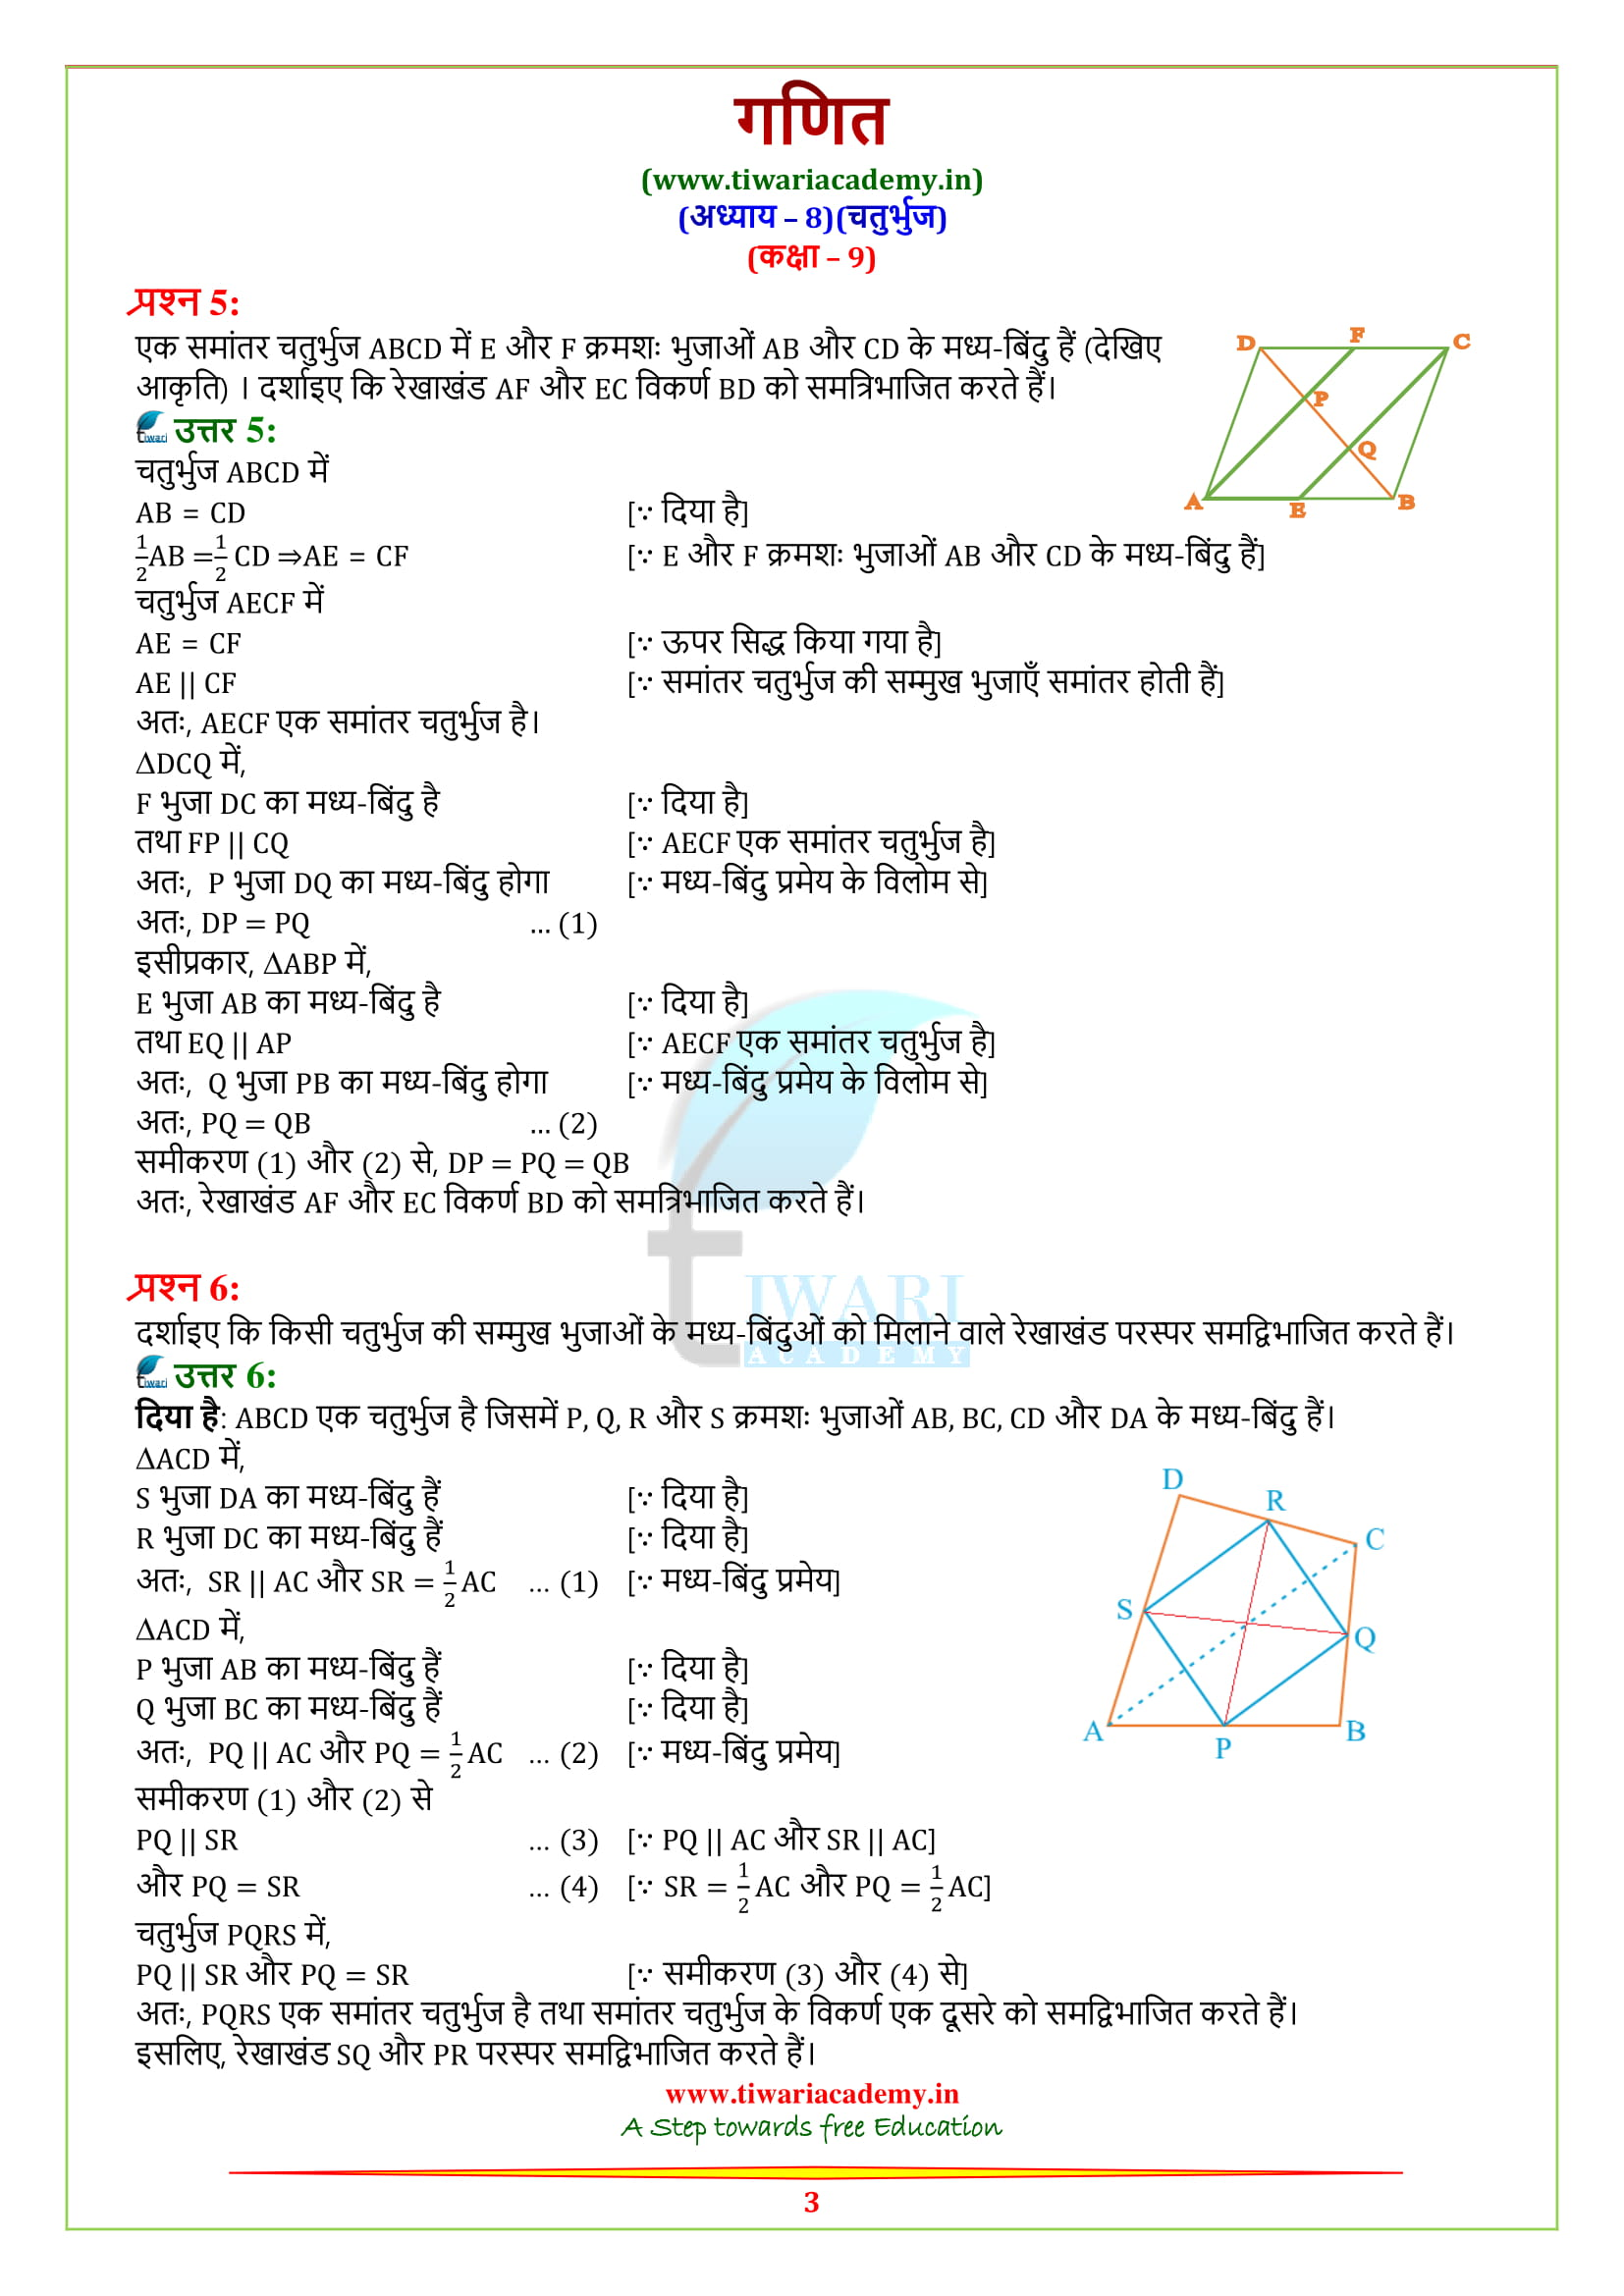 Class 9 Maths Exercise 8.2 solutions kunji guide